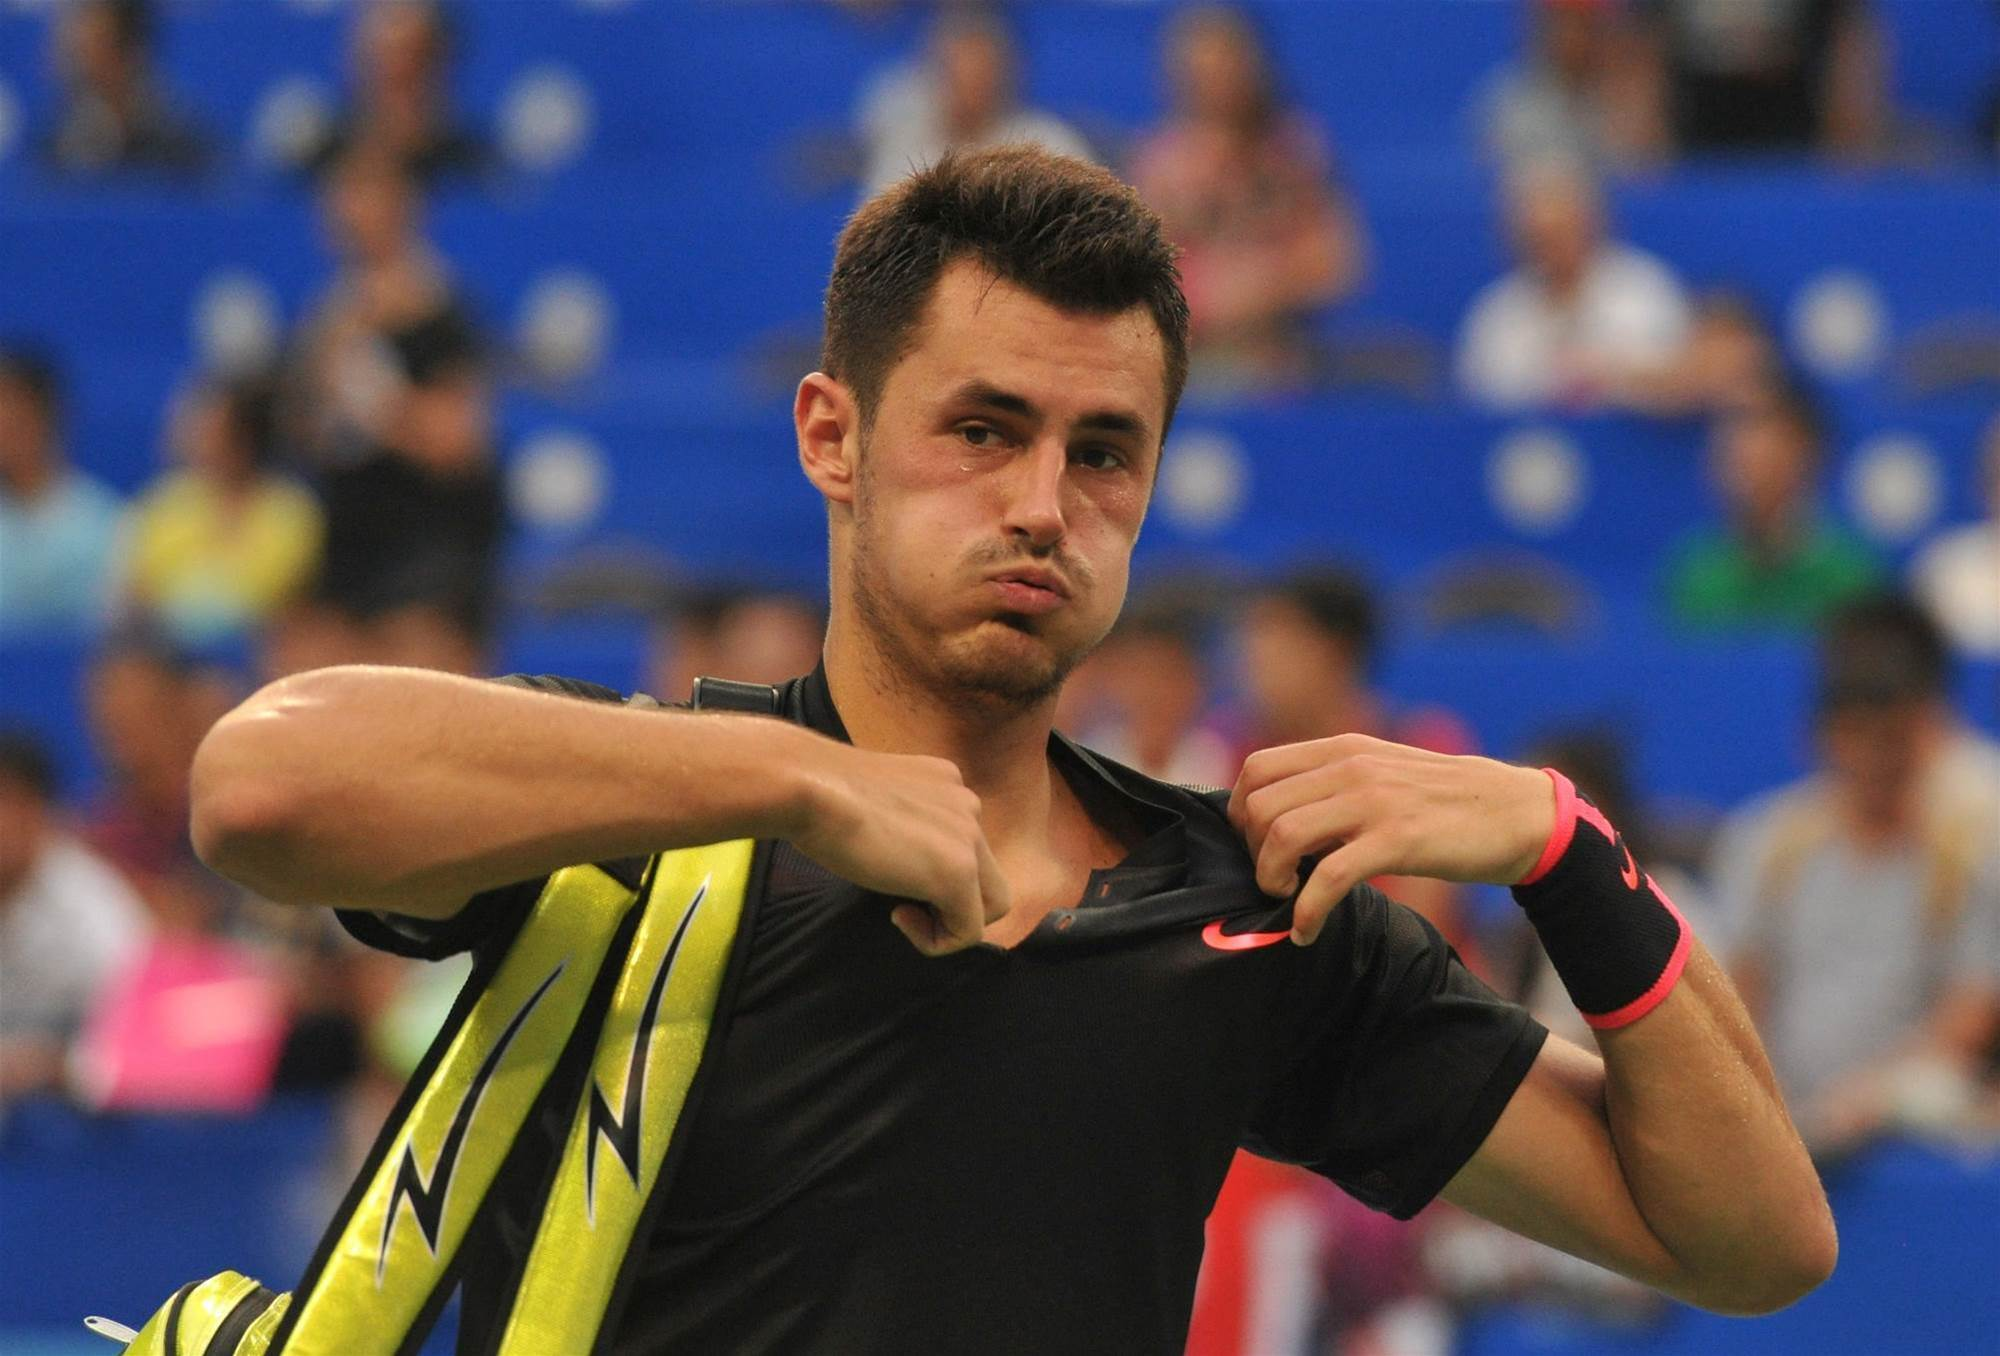 Tomic could miss Australian Open